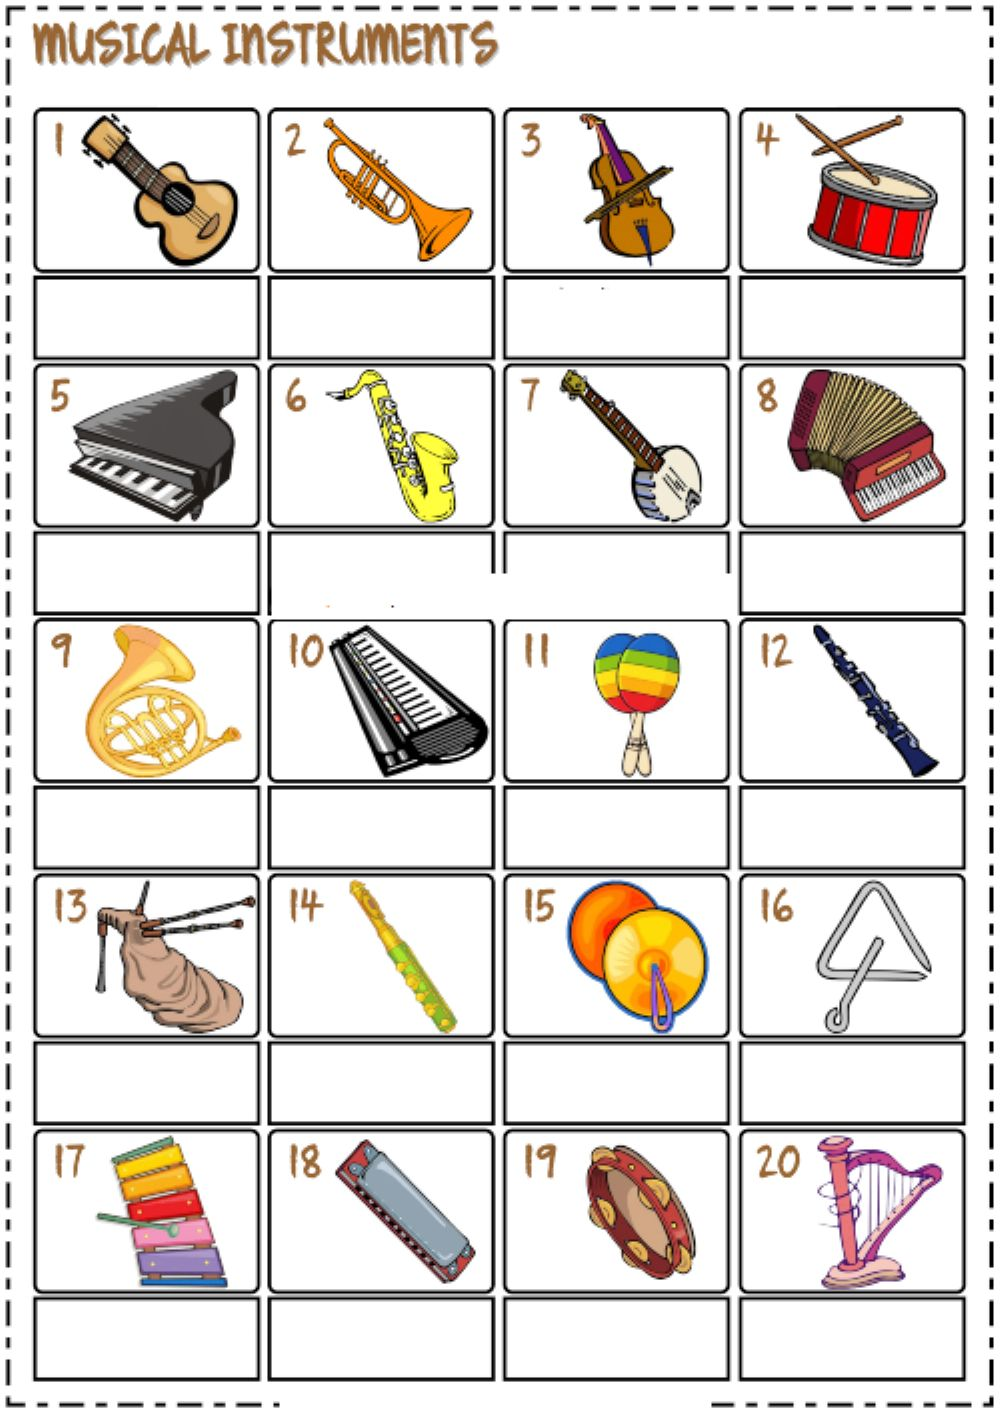 medium resolution of Musical instruments interactive exercise for 3rd grade